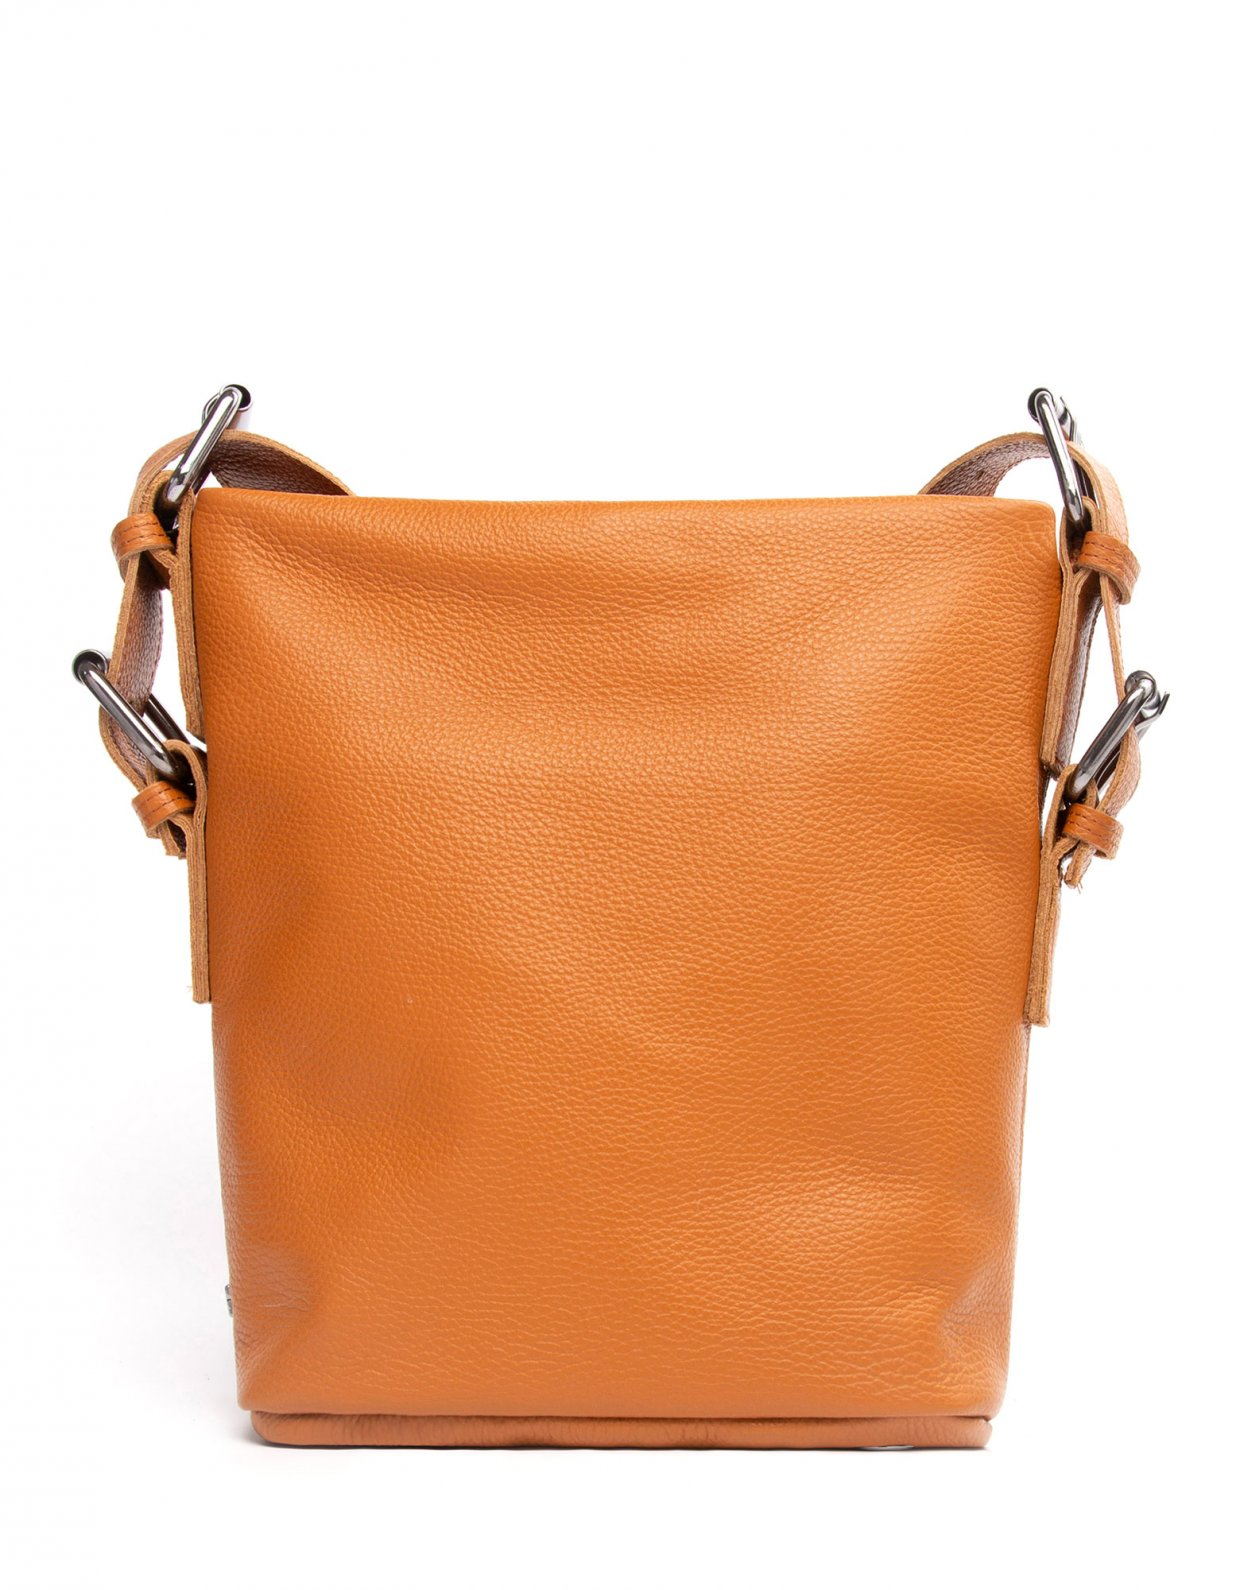 Elena Athanasiou Day to evening pouch large cognac